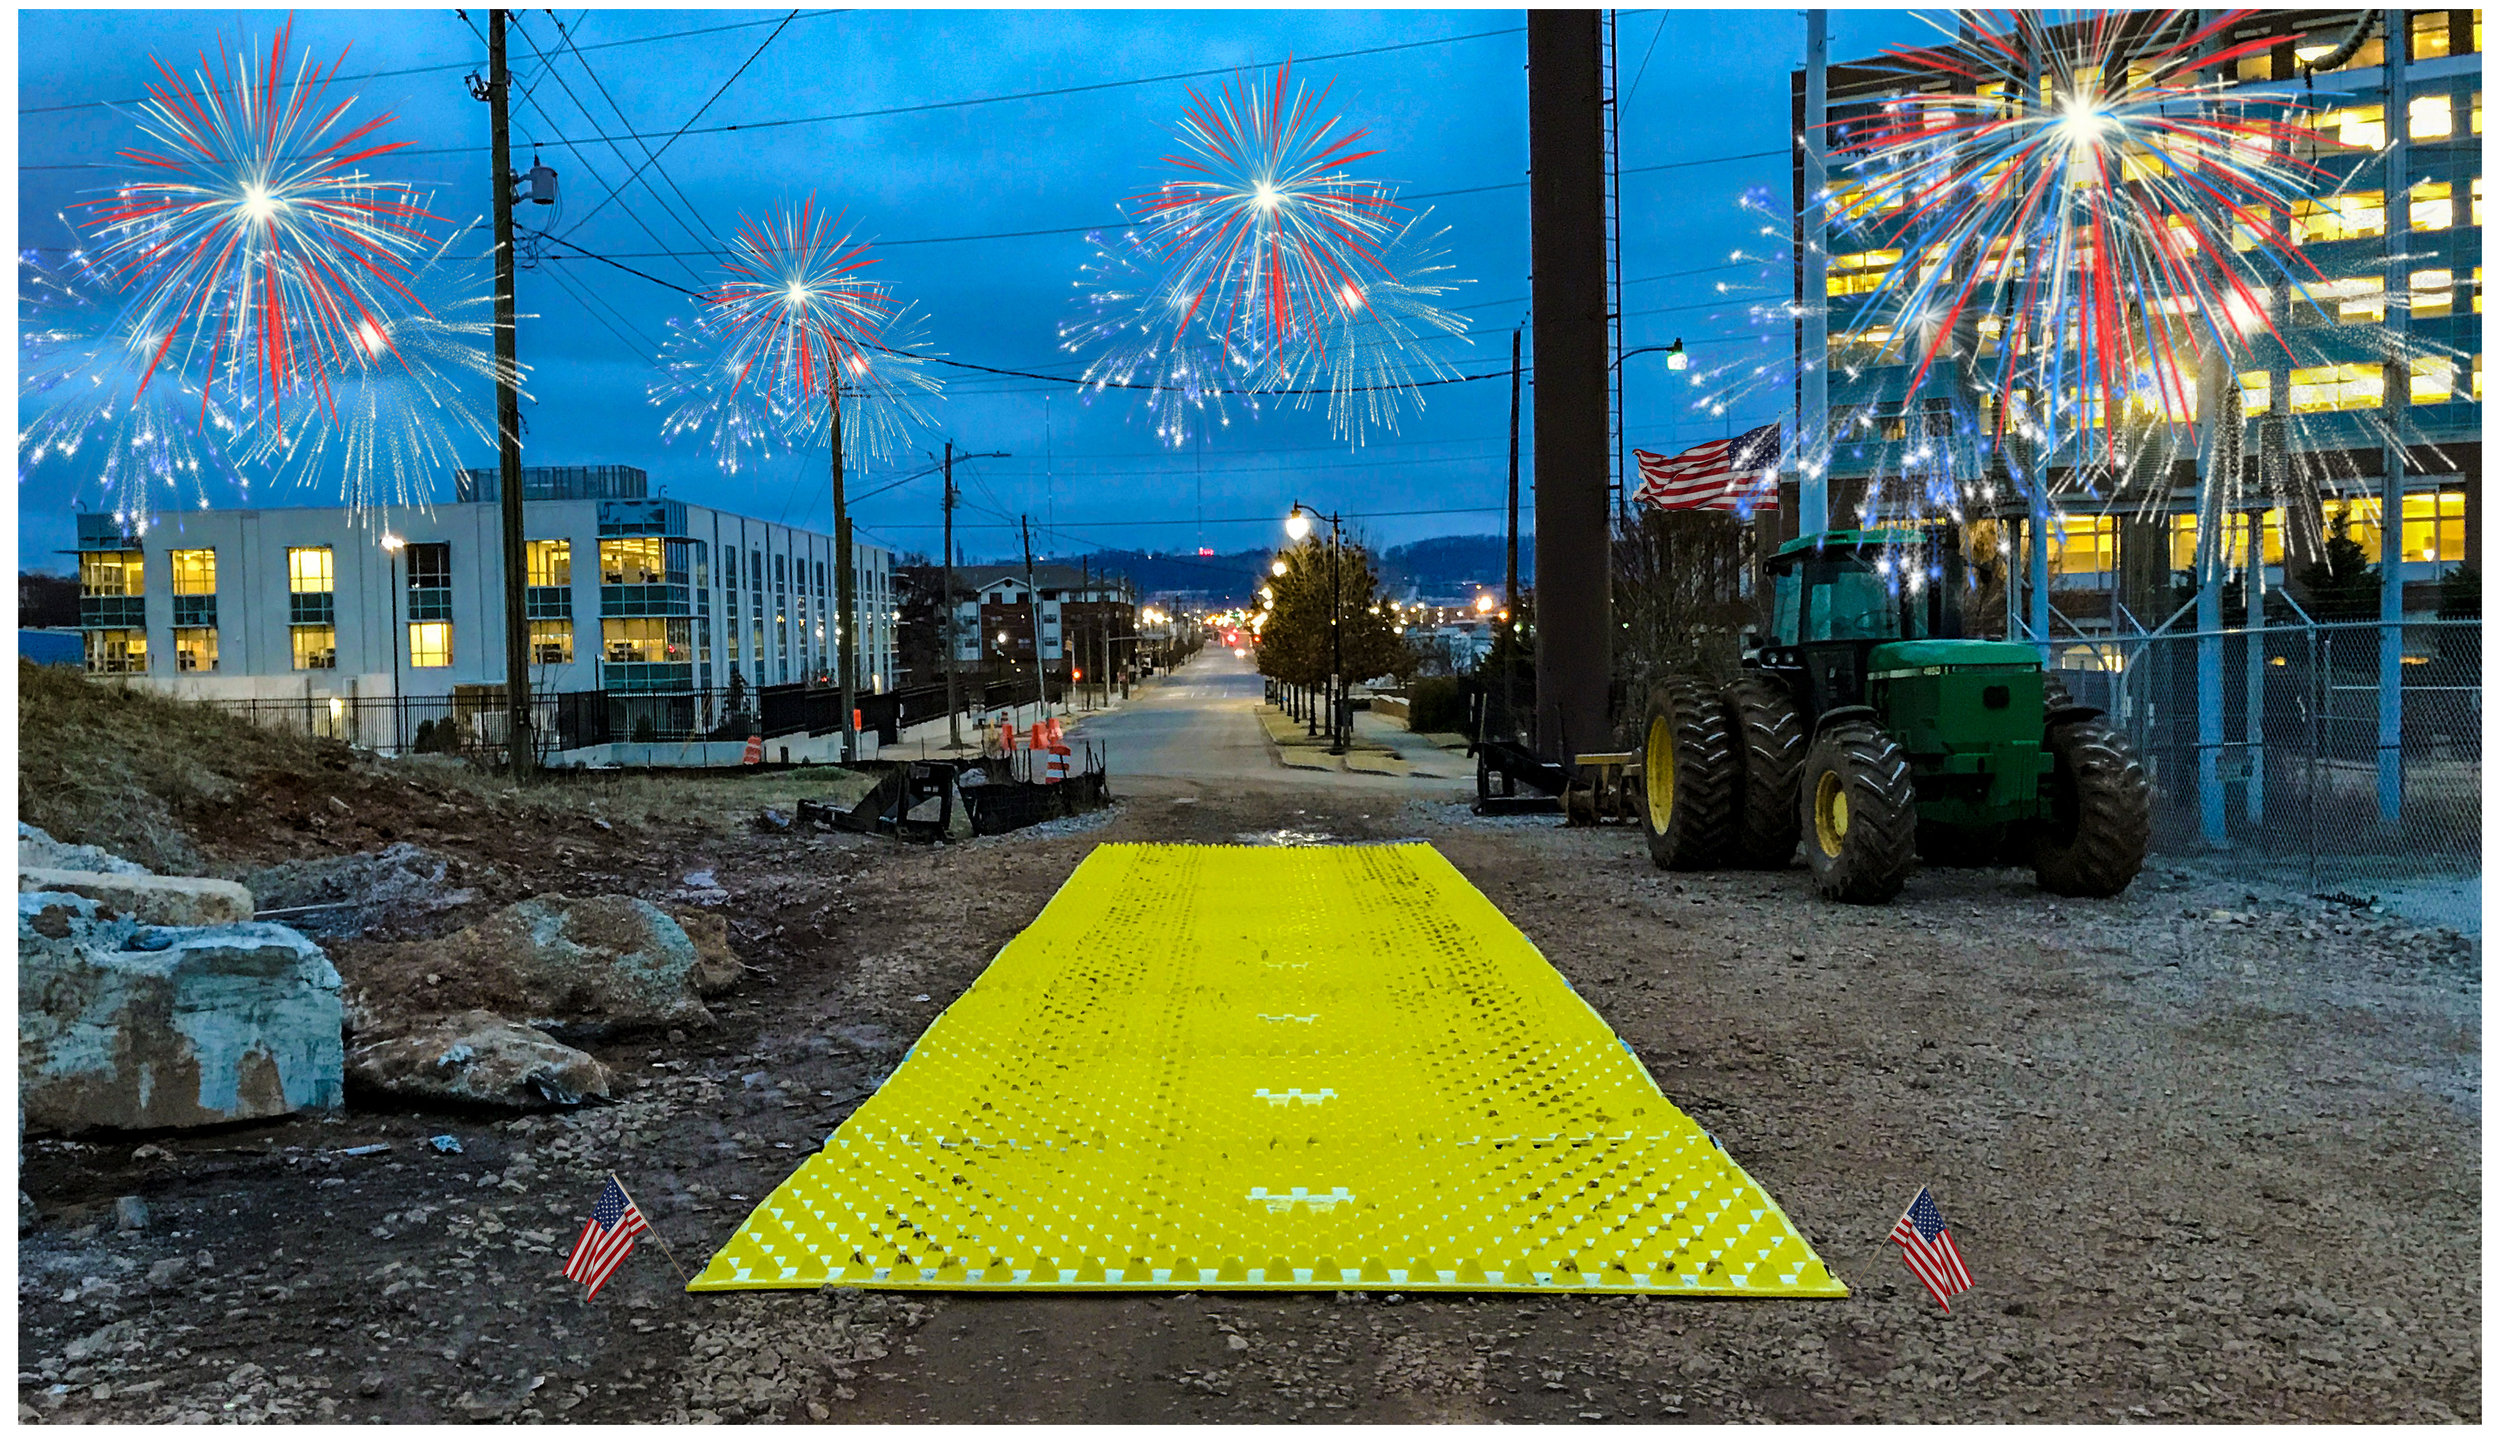 FODS_4thofJuly_TC-1_TRACKOUT CONROL_ STABILIZED CONSTRUCTION ENTRANCE.jpg